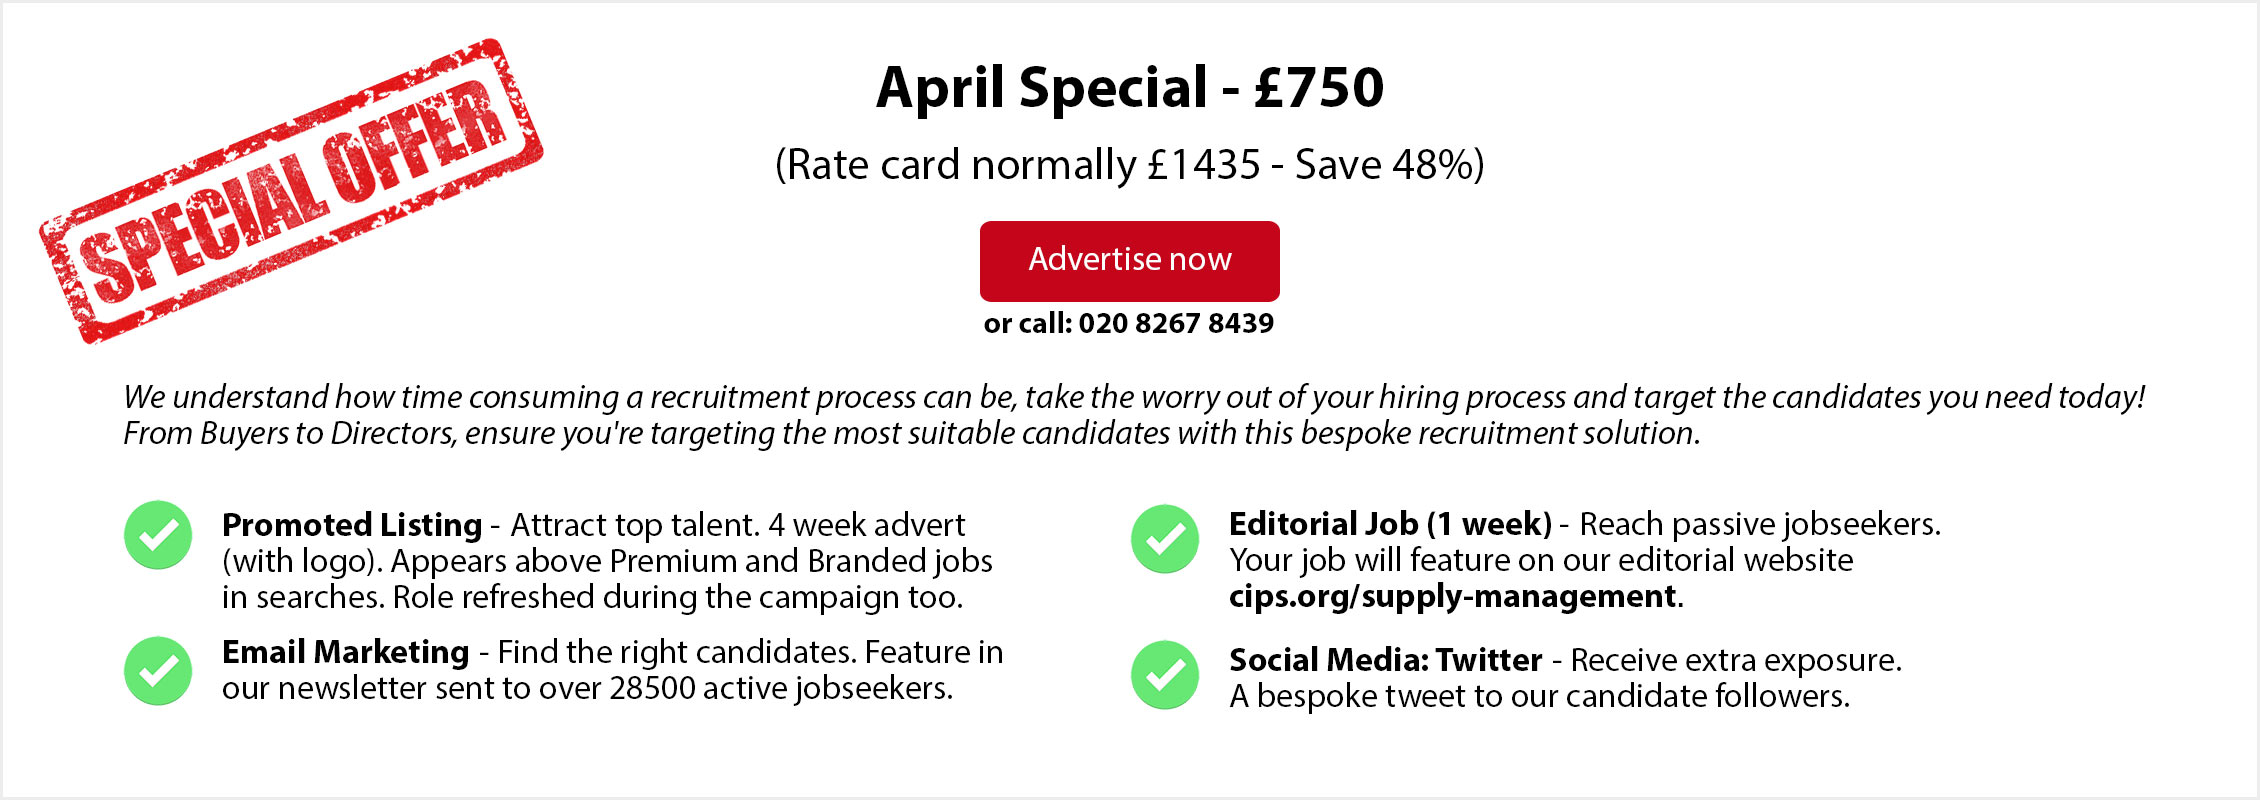 Special Offer. April Special - £750. (Rate card normally £1435 - Save 48%). ADVERTISE NOW or call: 020 8267 8439. From Buyers to Directors, ensure you're targeting the most suitable candidates with this bespoke recruitment solution. Promoted Listing - Attract top talent. 4 week advert (with logo). Appears above Premium and Branded jobs in searches. Role refreshed during the campaign too.  Editorial Job (1 week) - Reach passive jobseekers.  Your job will feature on our editorial website  cips.org/supply-management. Email Marketing - Find the right candidates. Feature in  our newsletter sent to over 28500 active jobseekers. Social Media: Twitter - Receive extra exposure. A bespoke tweet to our candidate followers.